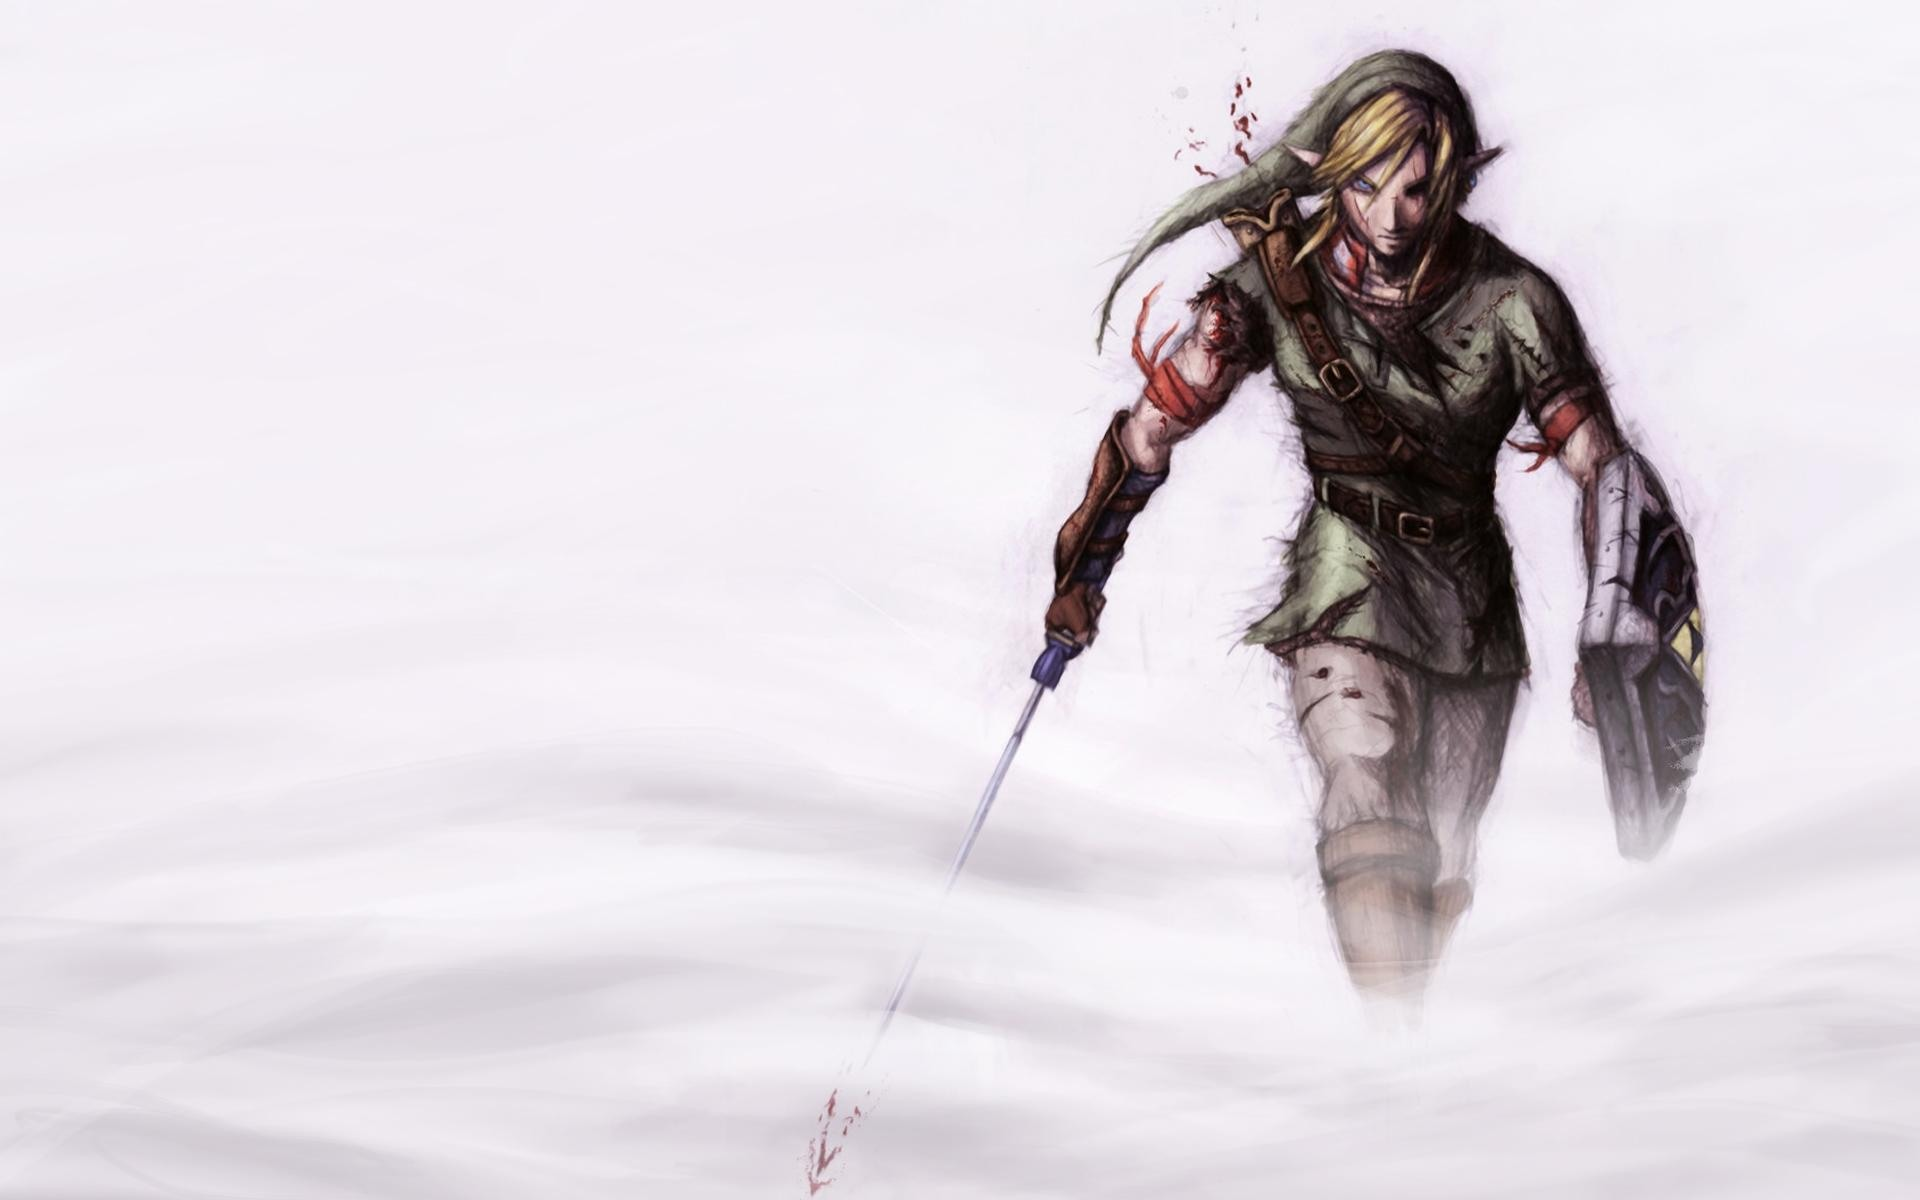 hd zelda wallpapers - photo #17